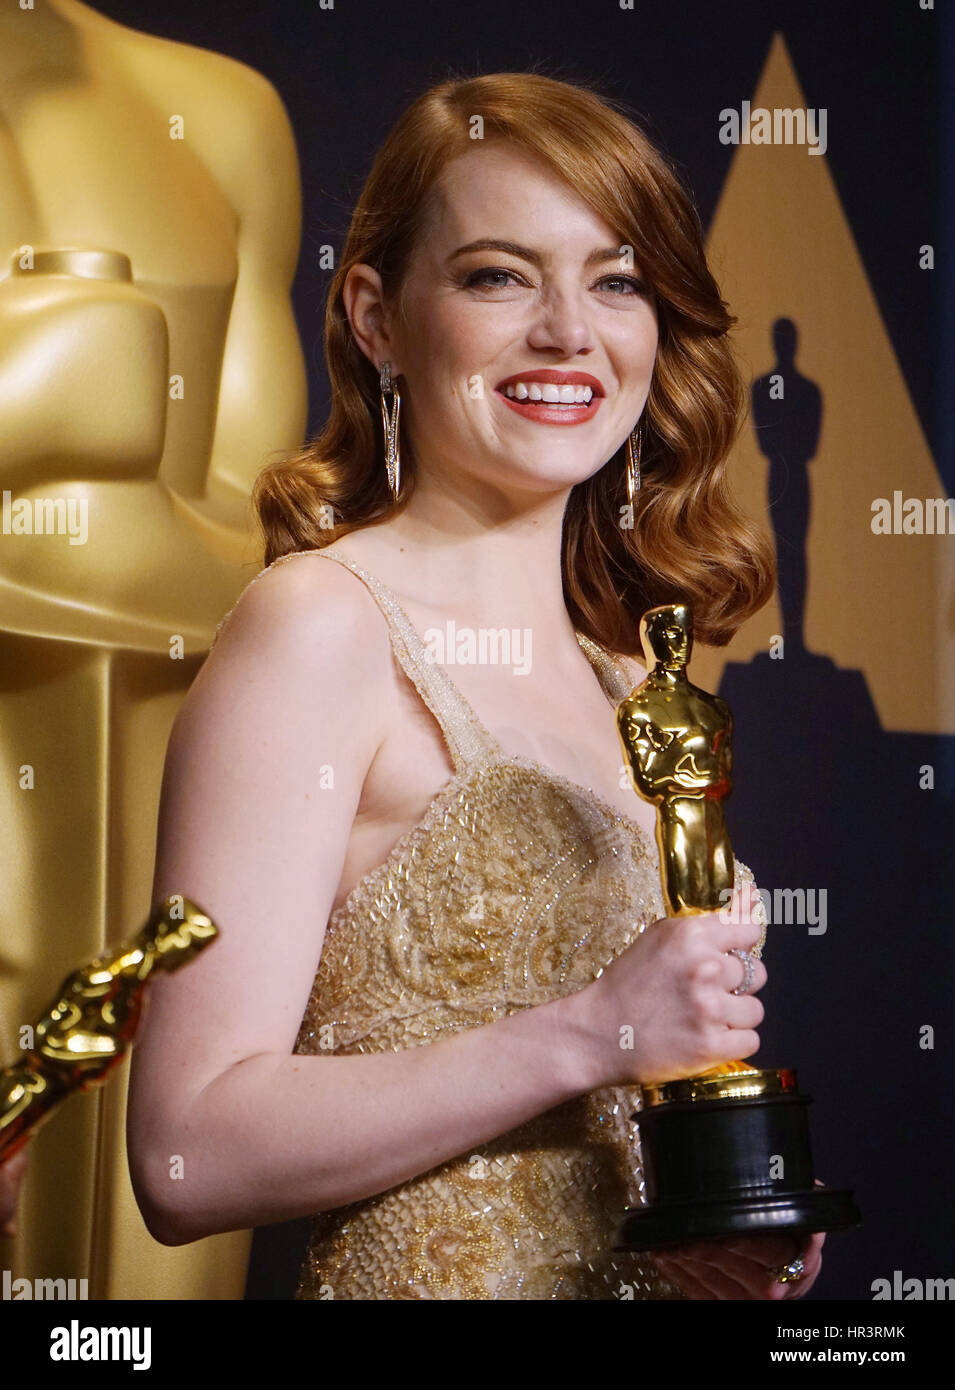 Los Angeles, USA. 26th February, 2017.  Emma Stone   89th Academy Awards ( Oscars ), press room at the Dolby Theatre - Stock Image